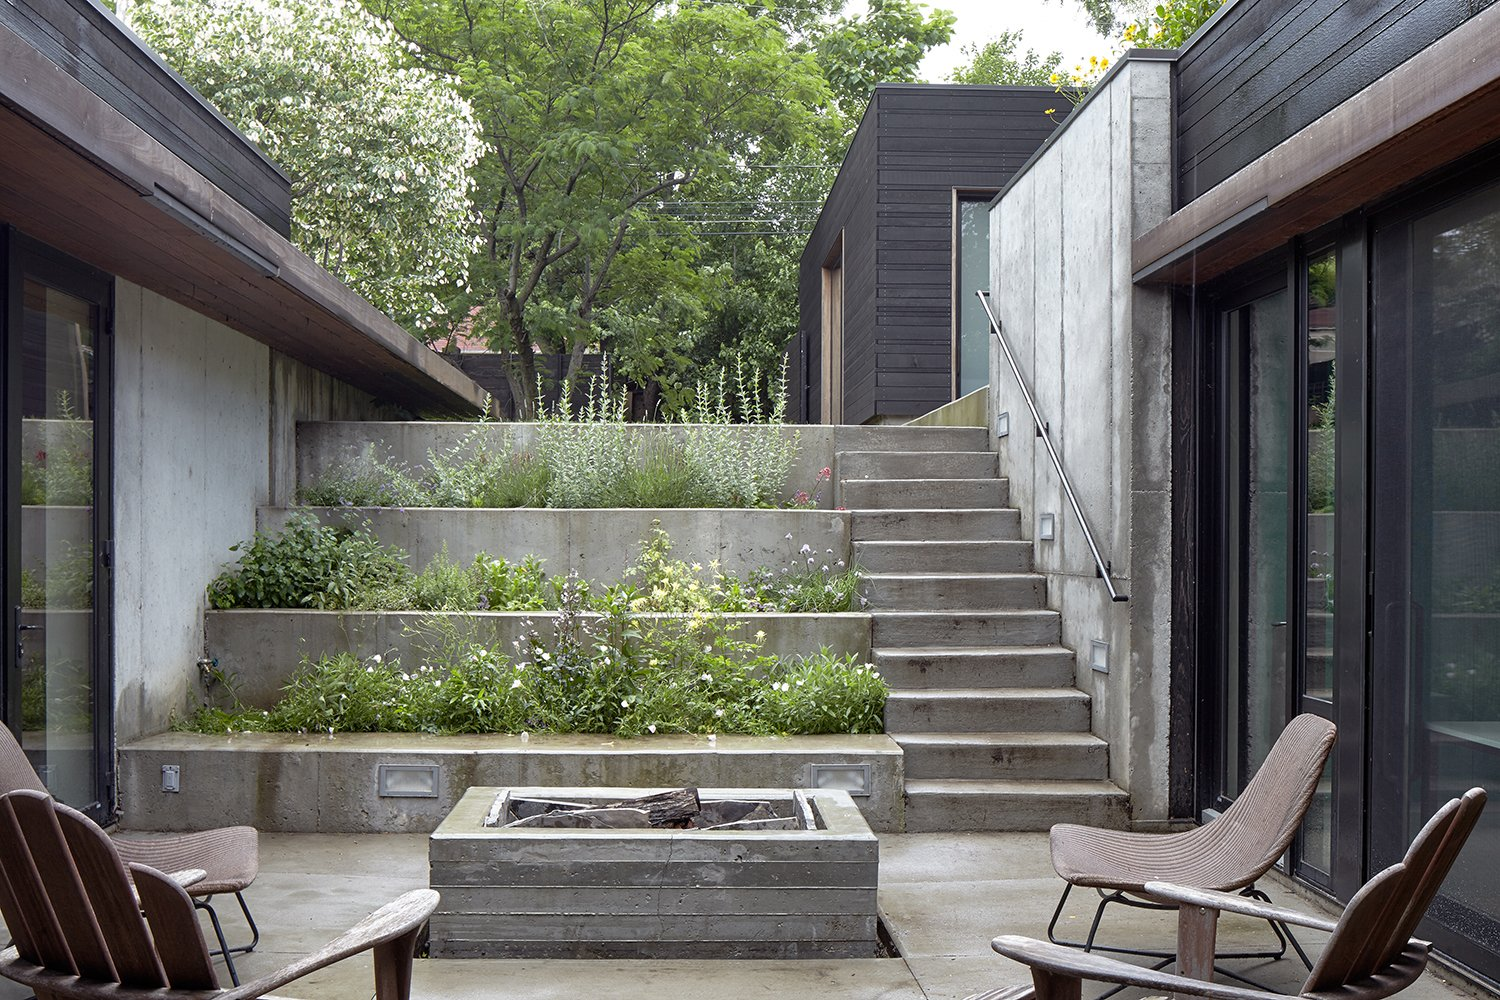 Small, Concrete, Exterior, and Concrete A stepped concrete garden planted with herbs and flowers marks the descent to the house. The courtyard is the focal point of the U-shaped structure; there is clear visibility between the kitchen on one side and the children's bedrooms on the other.  Best Exterior Small Concrete Photos from Nature Reigns Supreme at a Verdant Kansas City Home